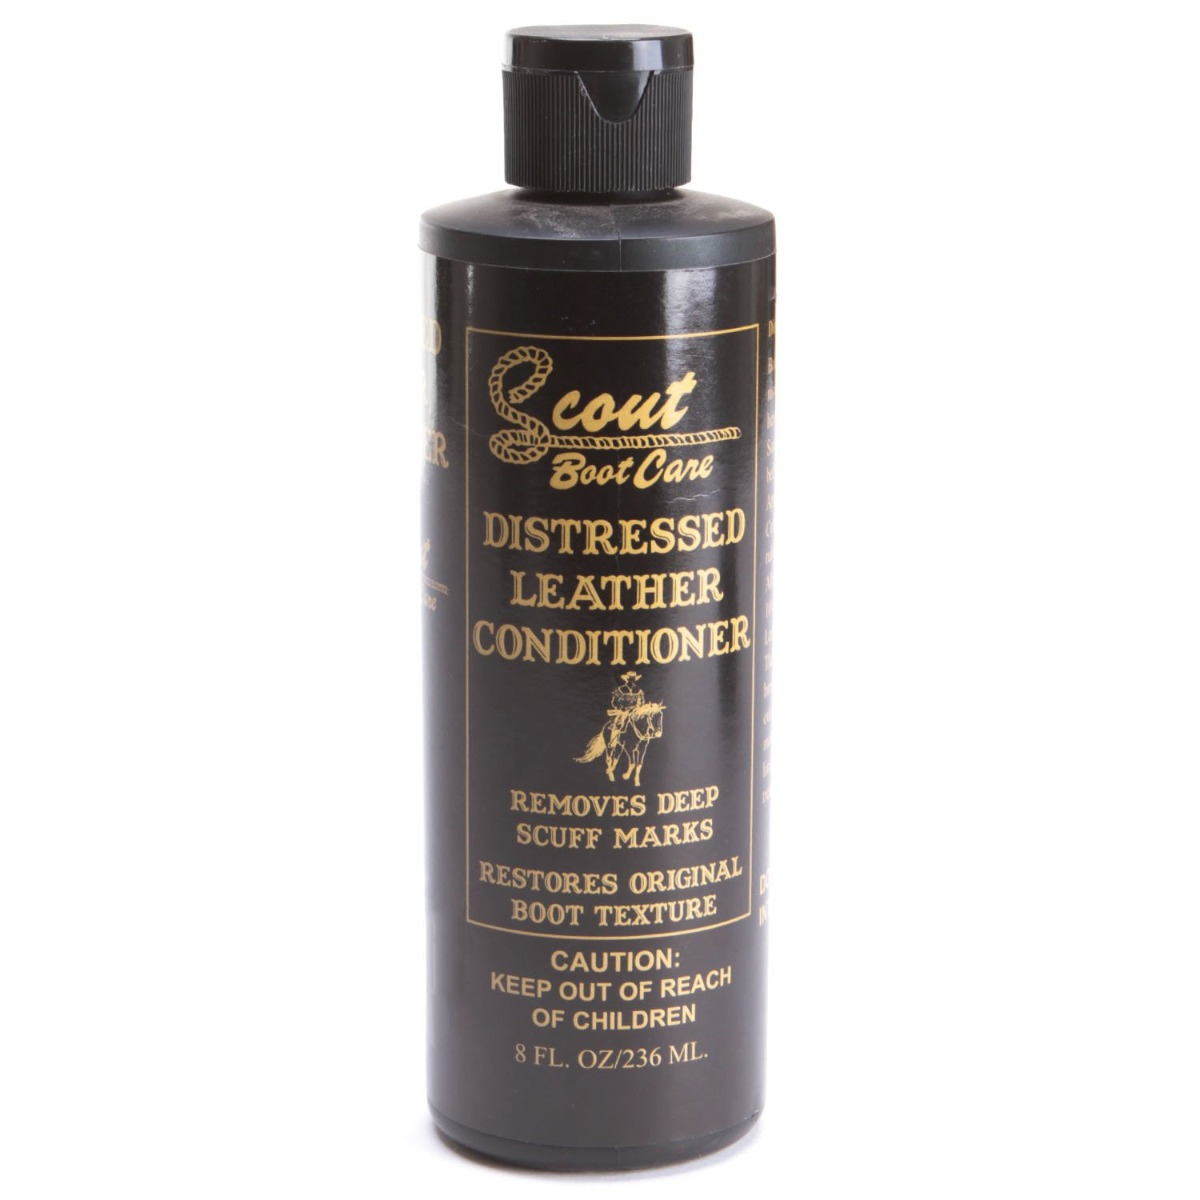 M&F Western Scout Distressed Leather Conditioner by 8oz